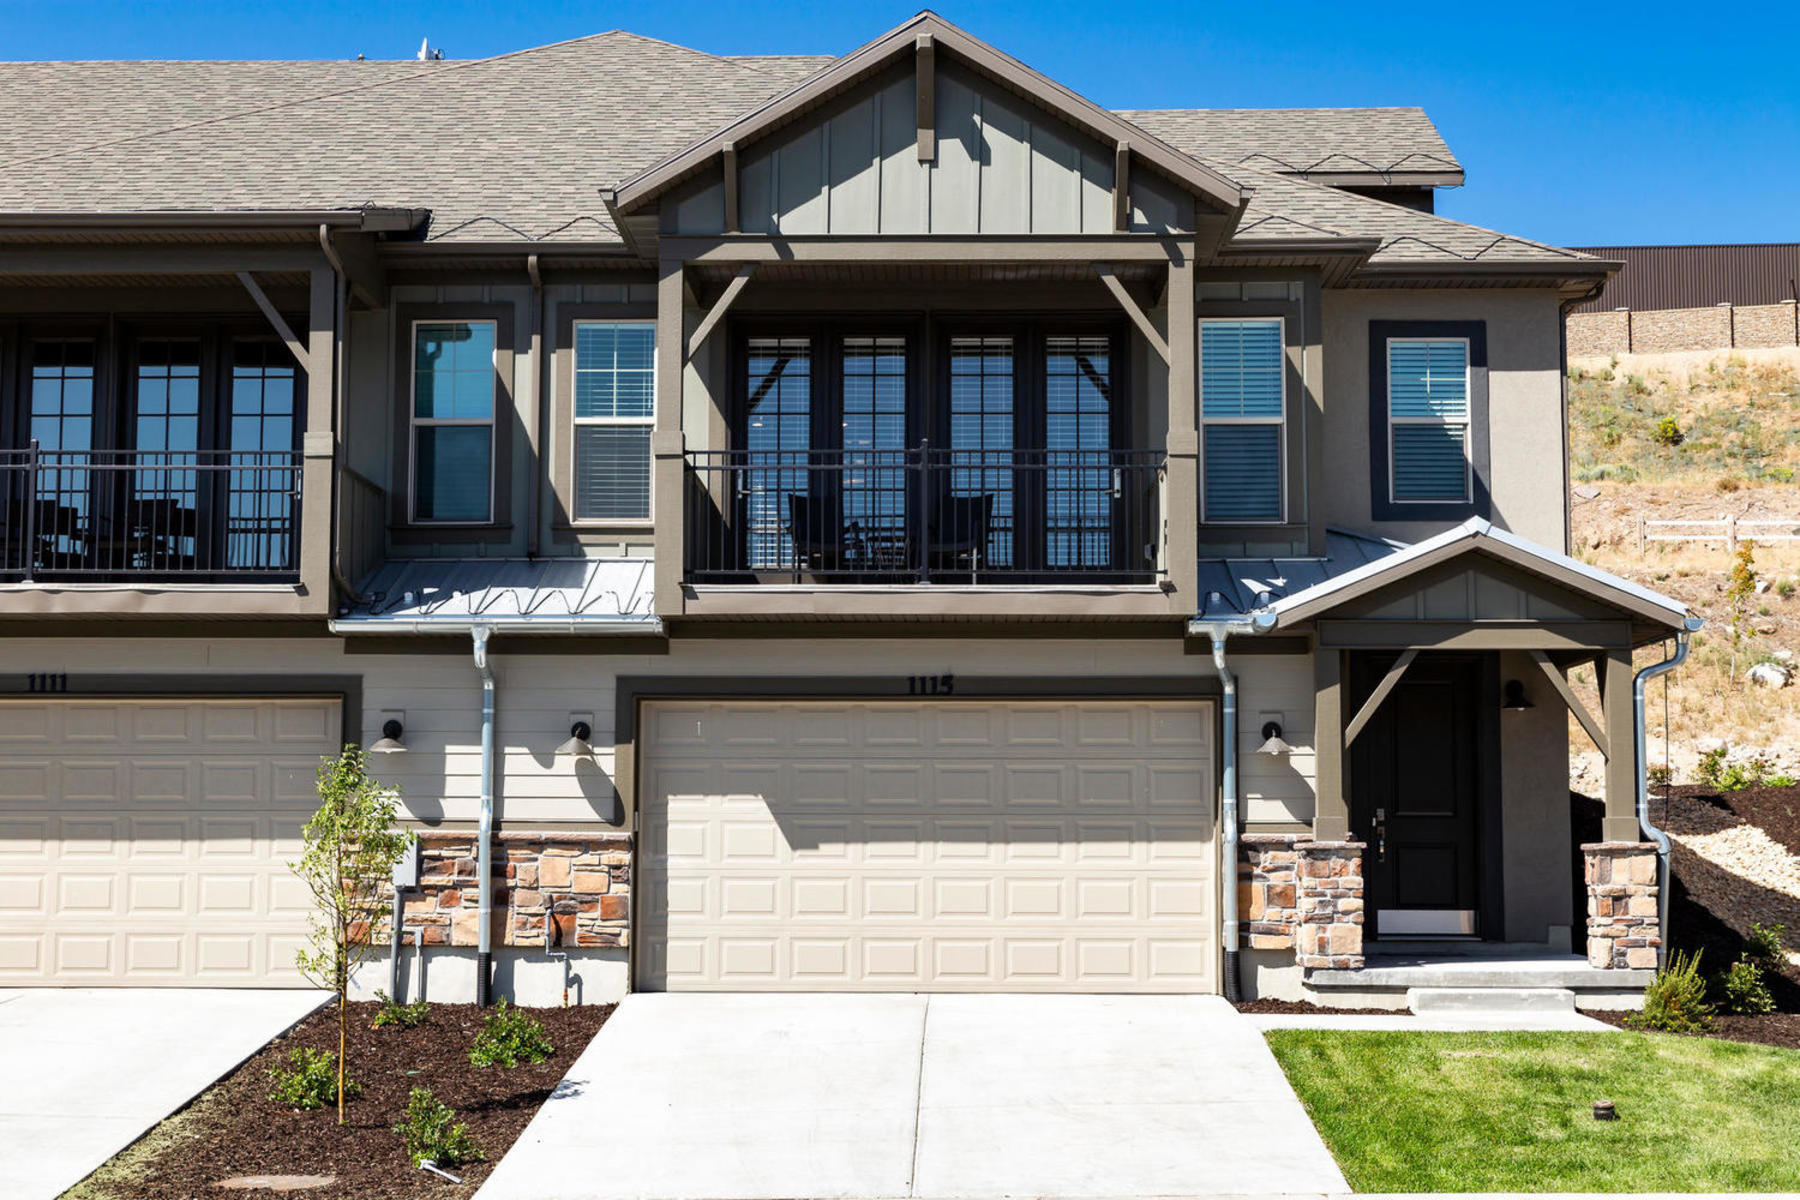 townhouses for Active at Brand New Beautiful Townhome Just 6 Minutes to Historic Park City 1067 W Wasatch Springs Rd #O1 Heber, Utah 84032 United States